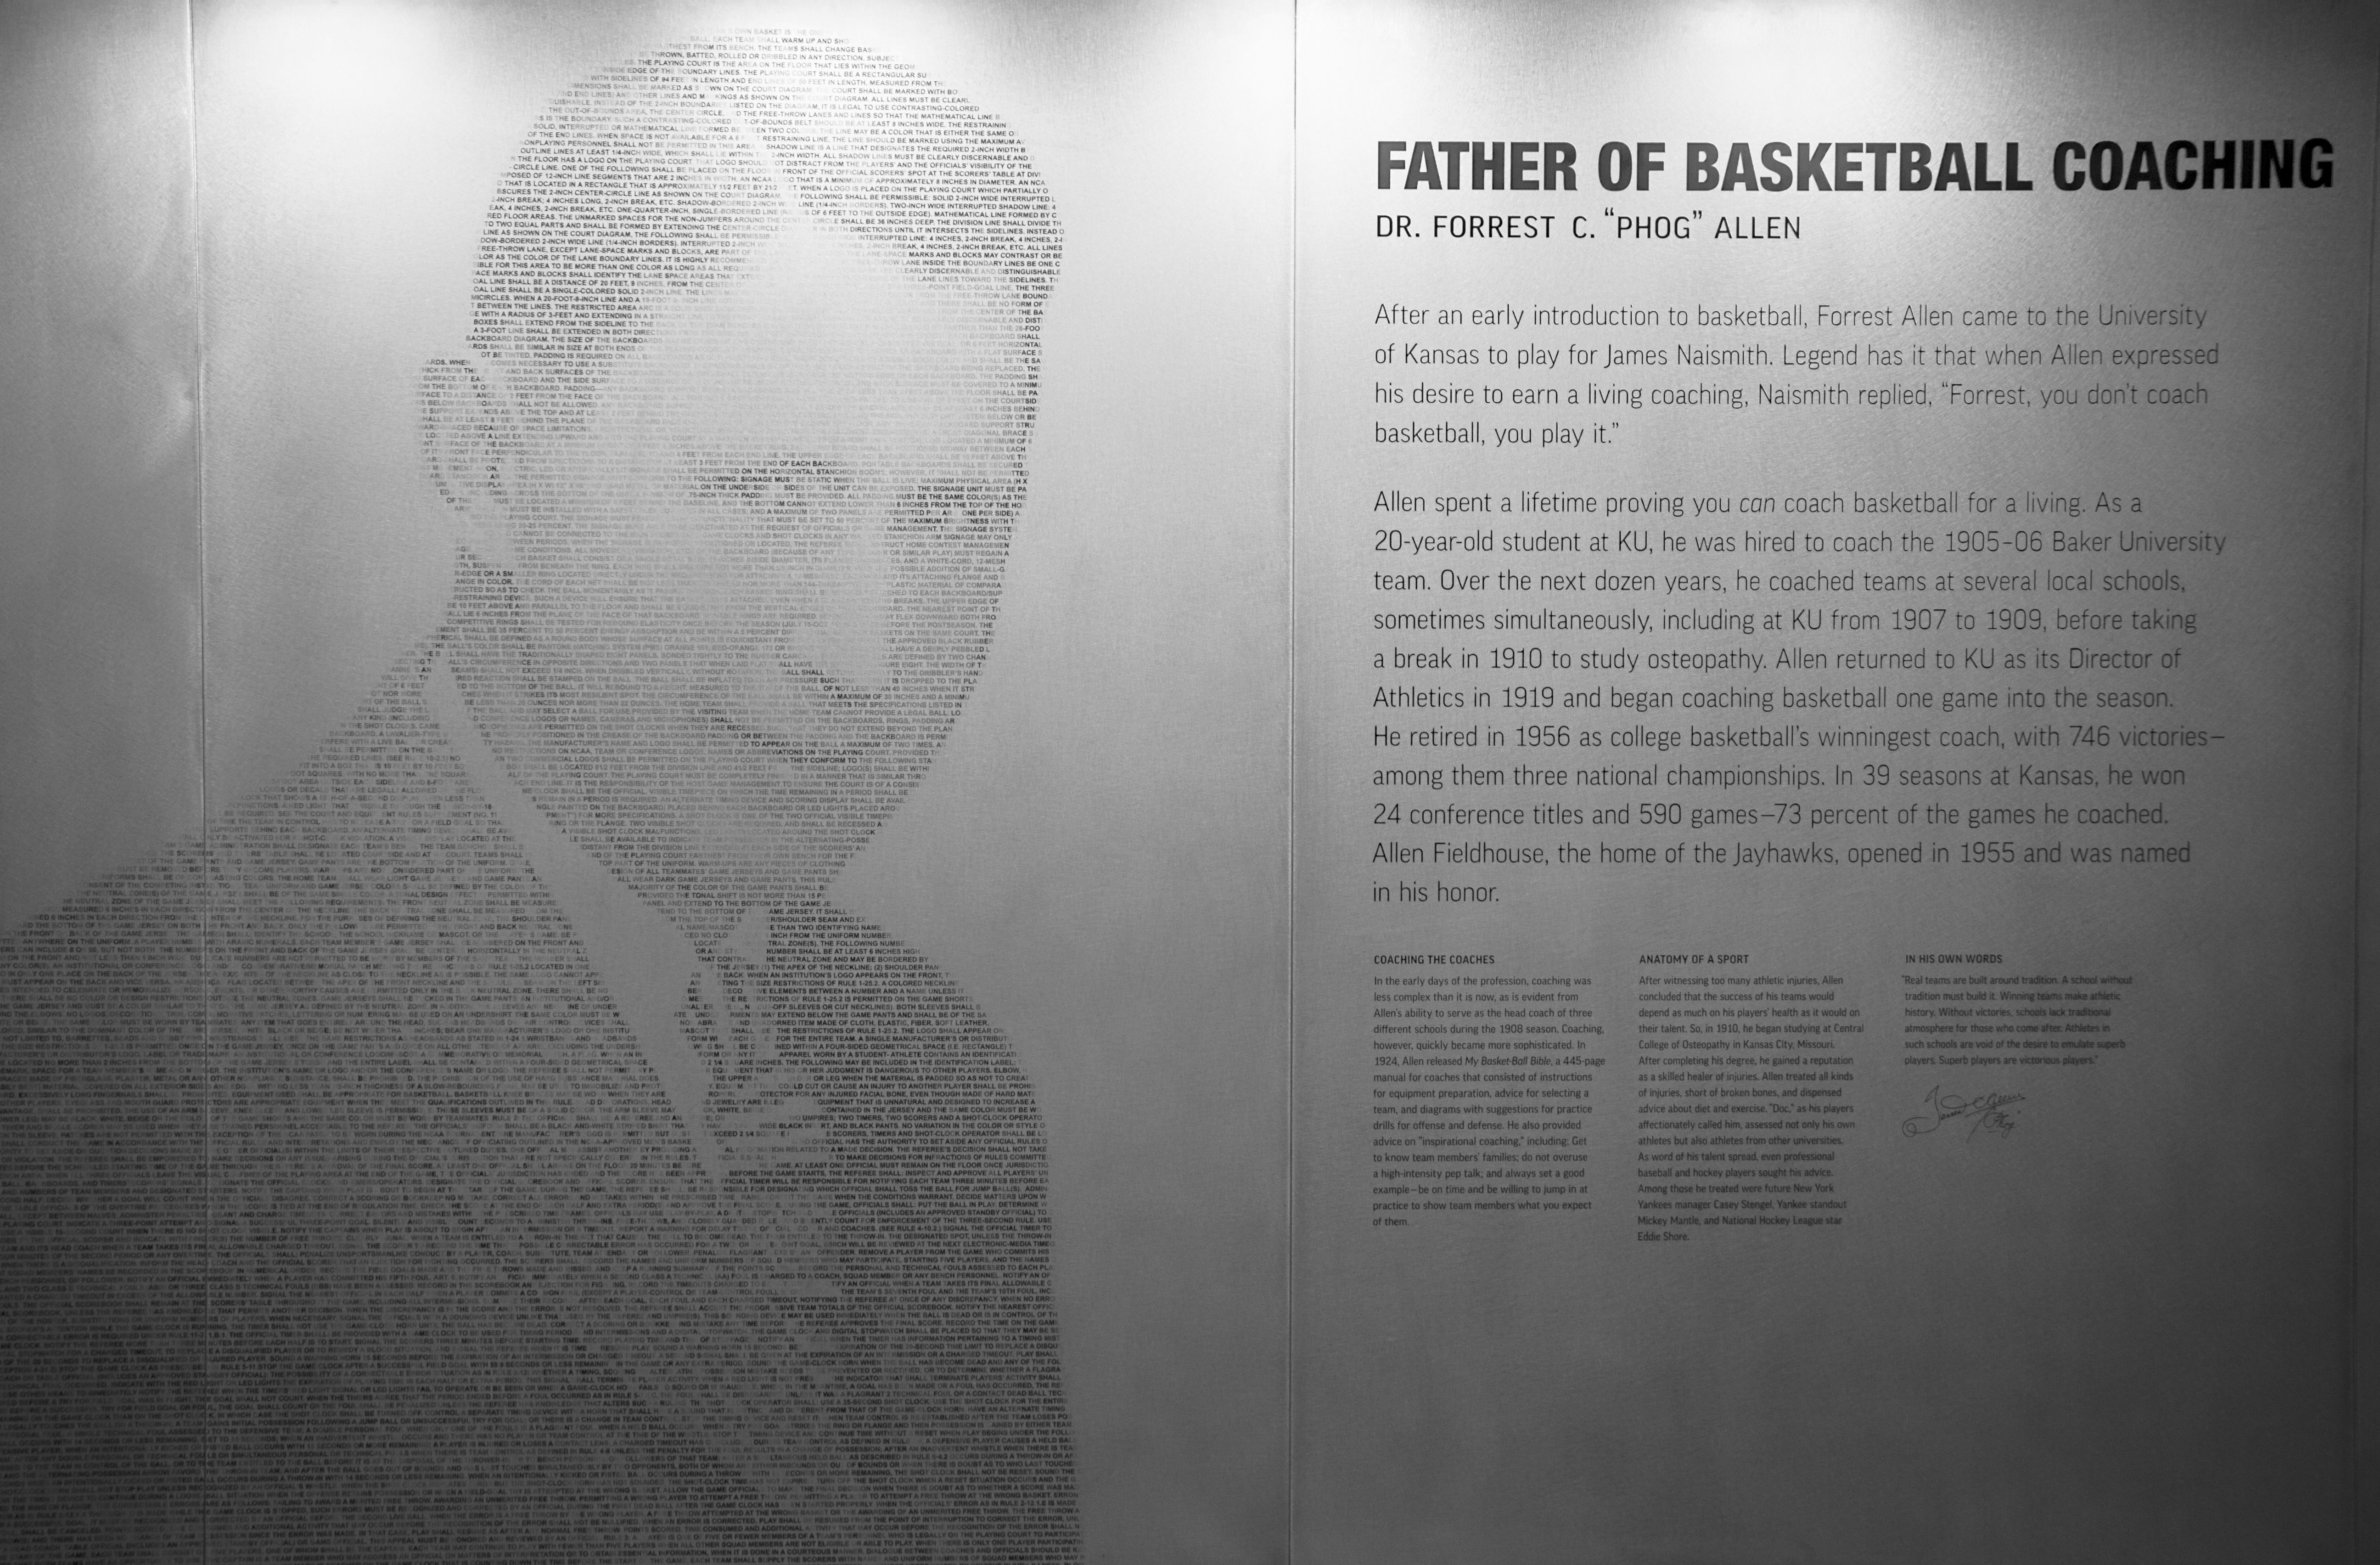 The Phog Allen Mural in the DeBruce Center.